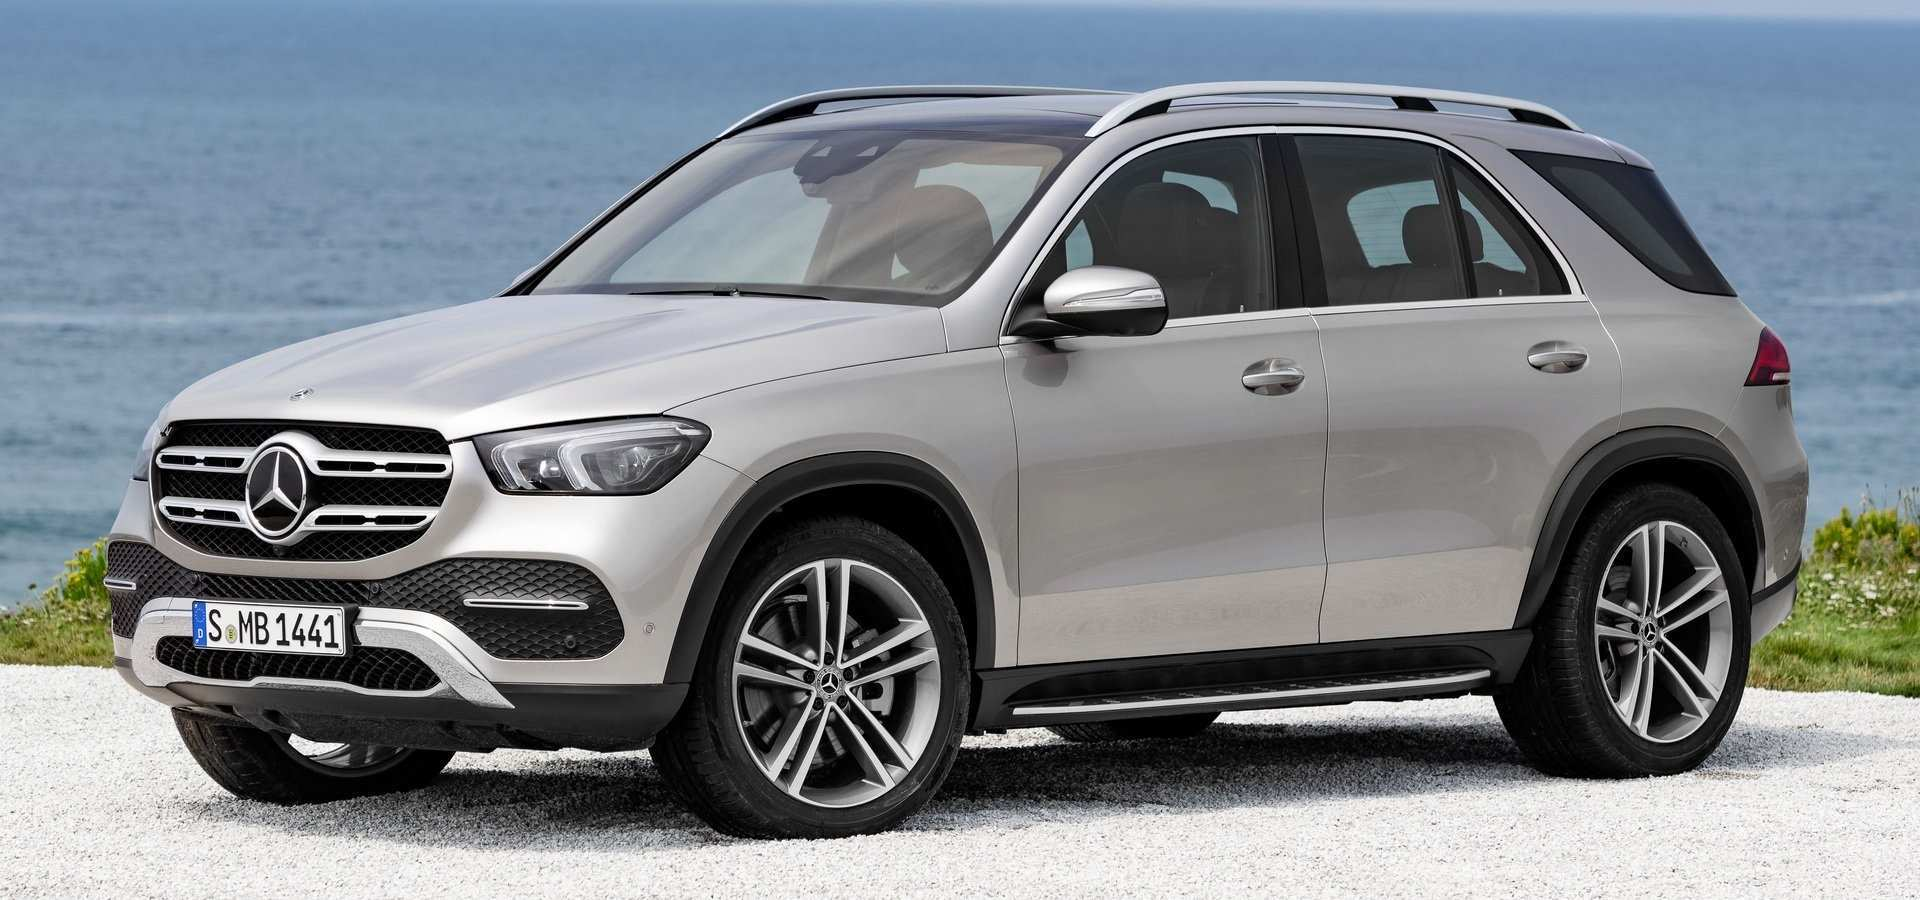 67 The Best 2019 Mercedes Ml Class First Drive